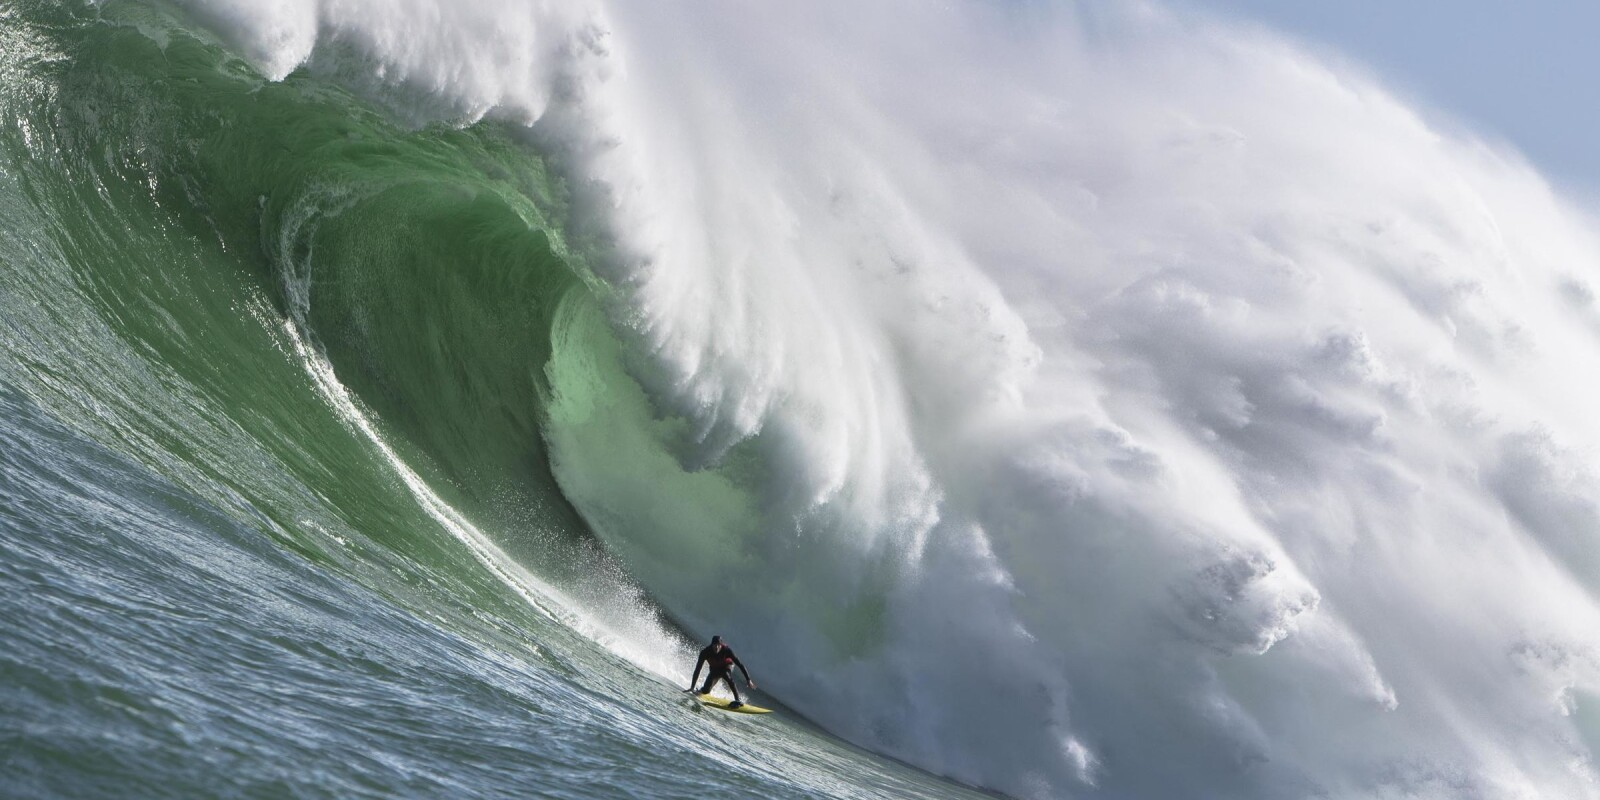 Big Xxl Matt Bromley Goes Xxl In His Hometown In South Africa Big Wave